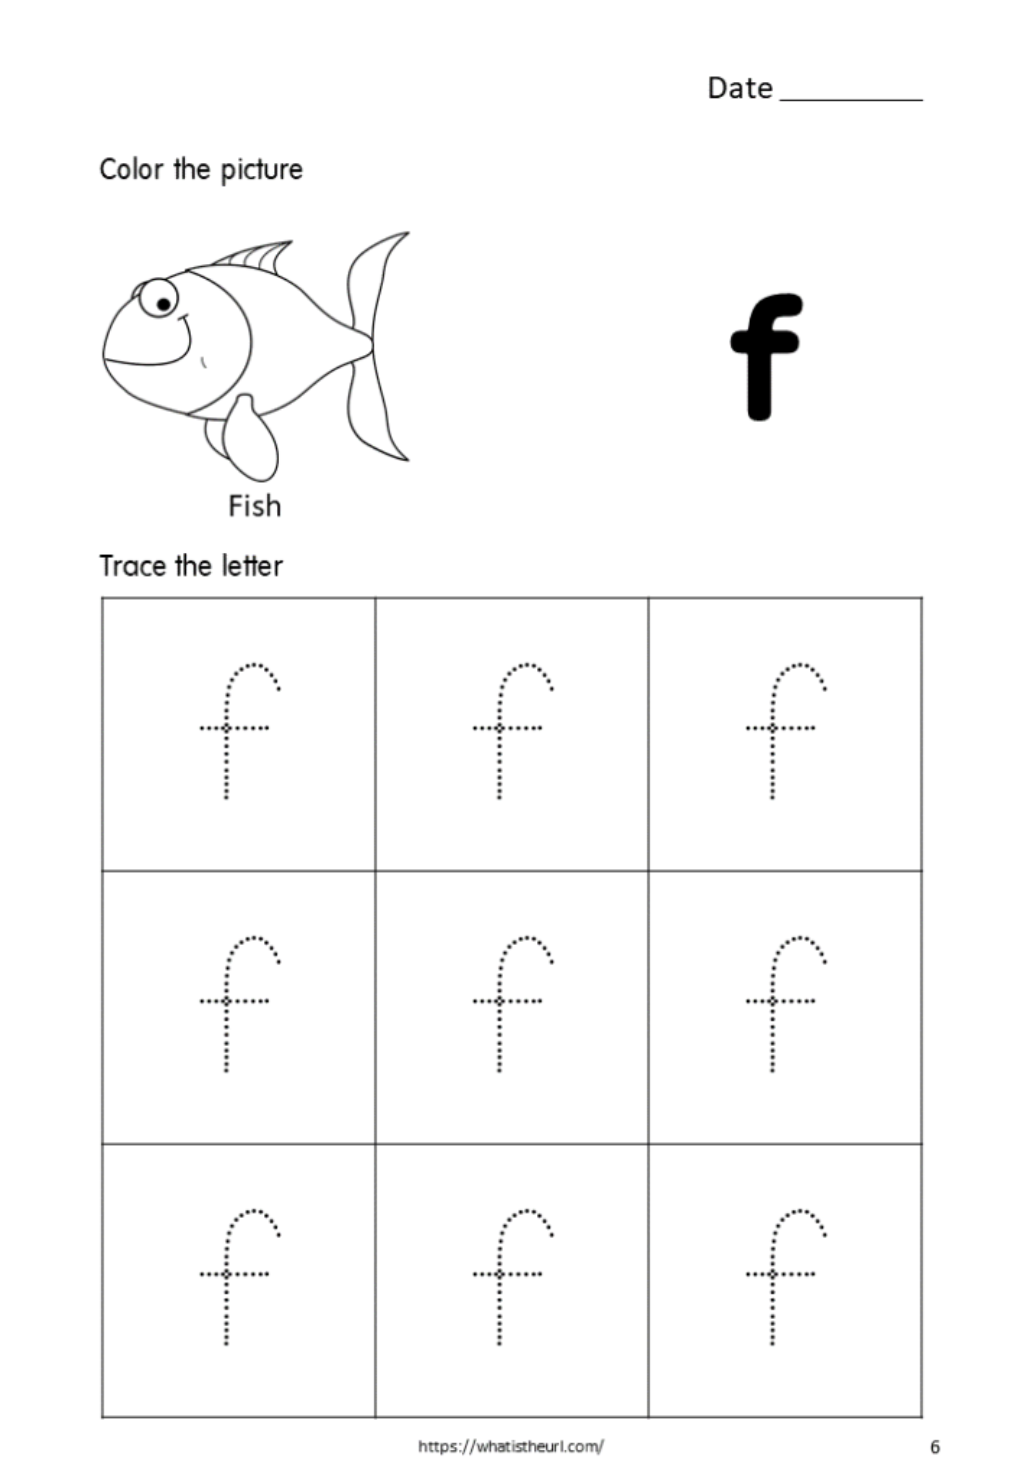 Printable-Tracing-Letters-Small-Letter-F-For-Kids - Your within Letter F Tracing Printable